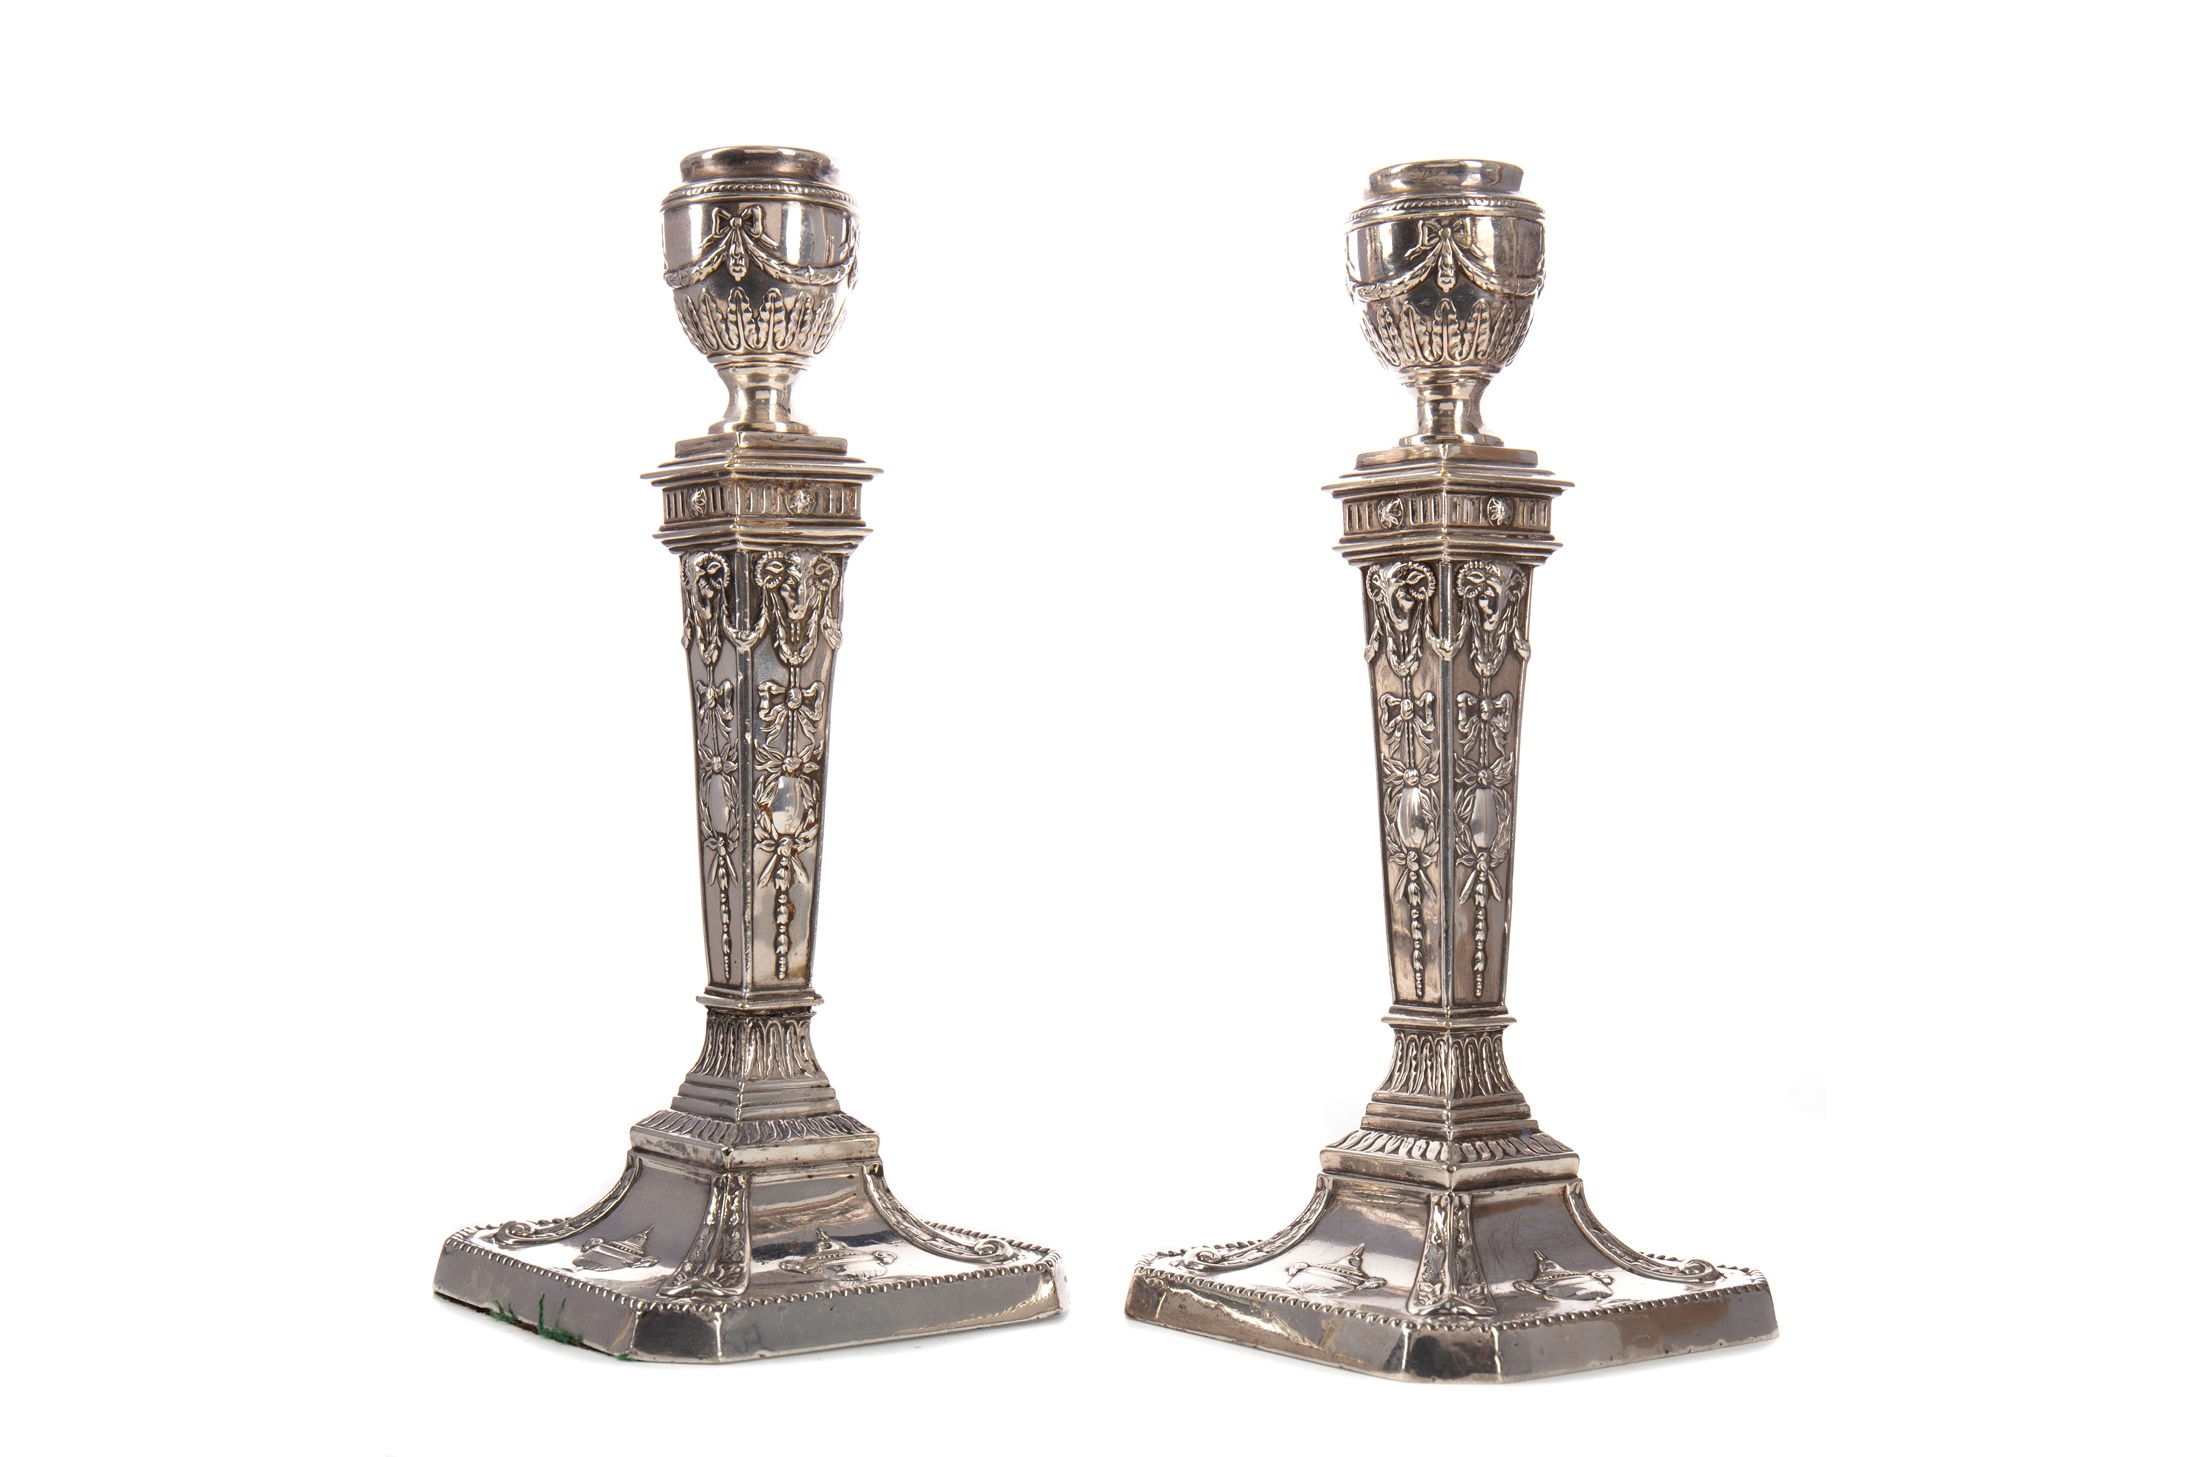 A PAIR OF LATE VICTORIAN SILVER PLATED CANDLESTICKS